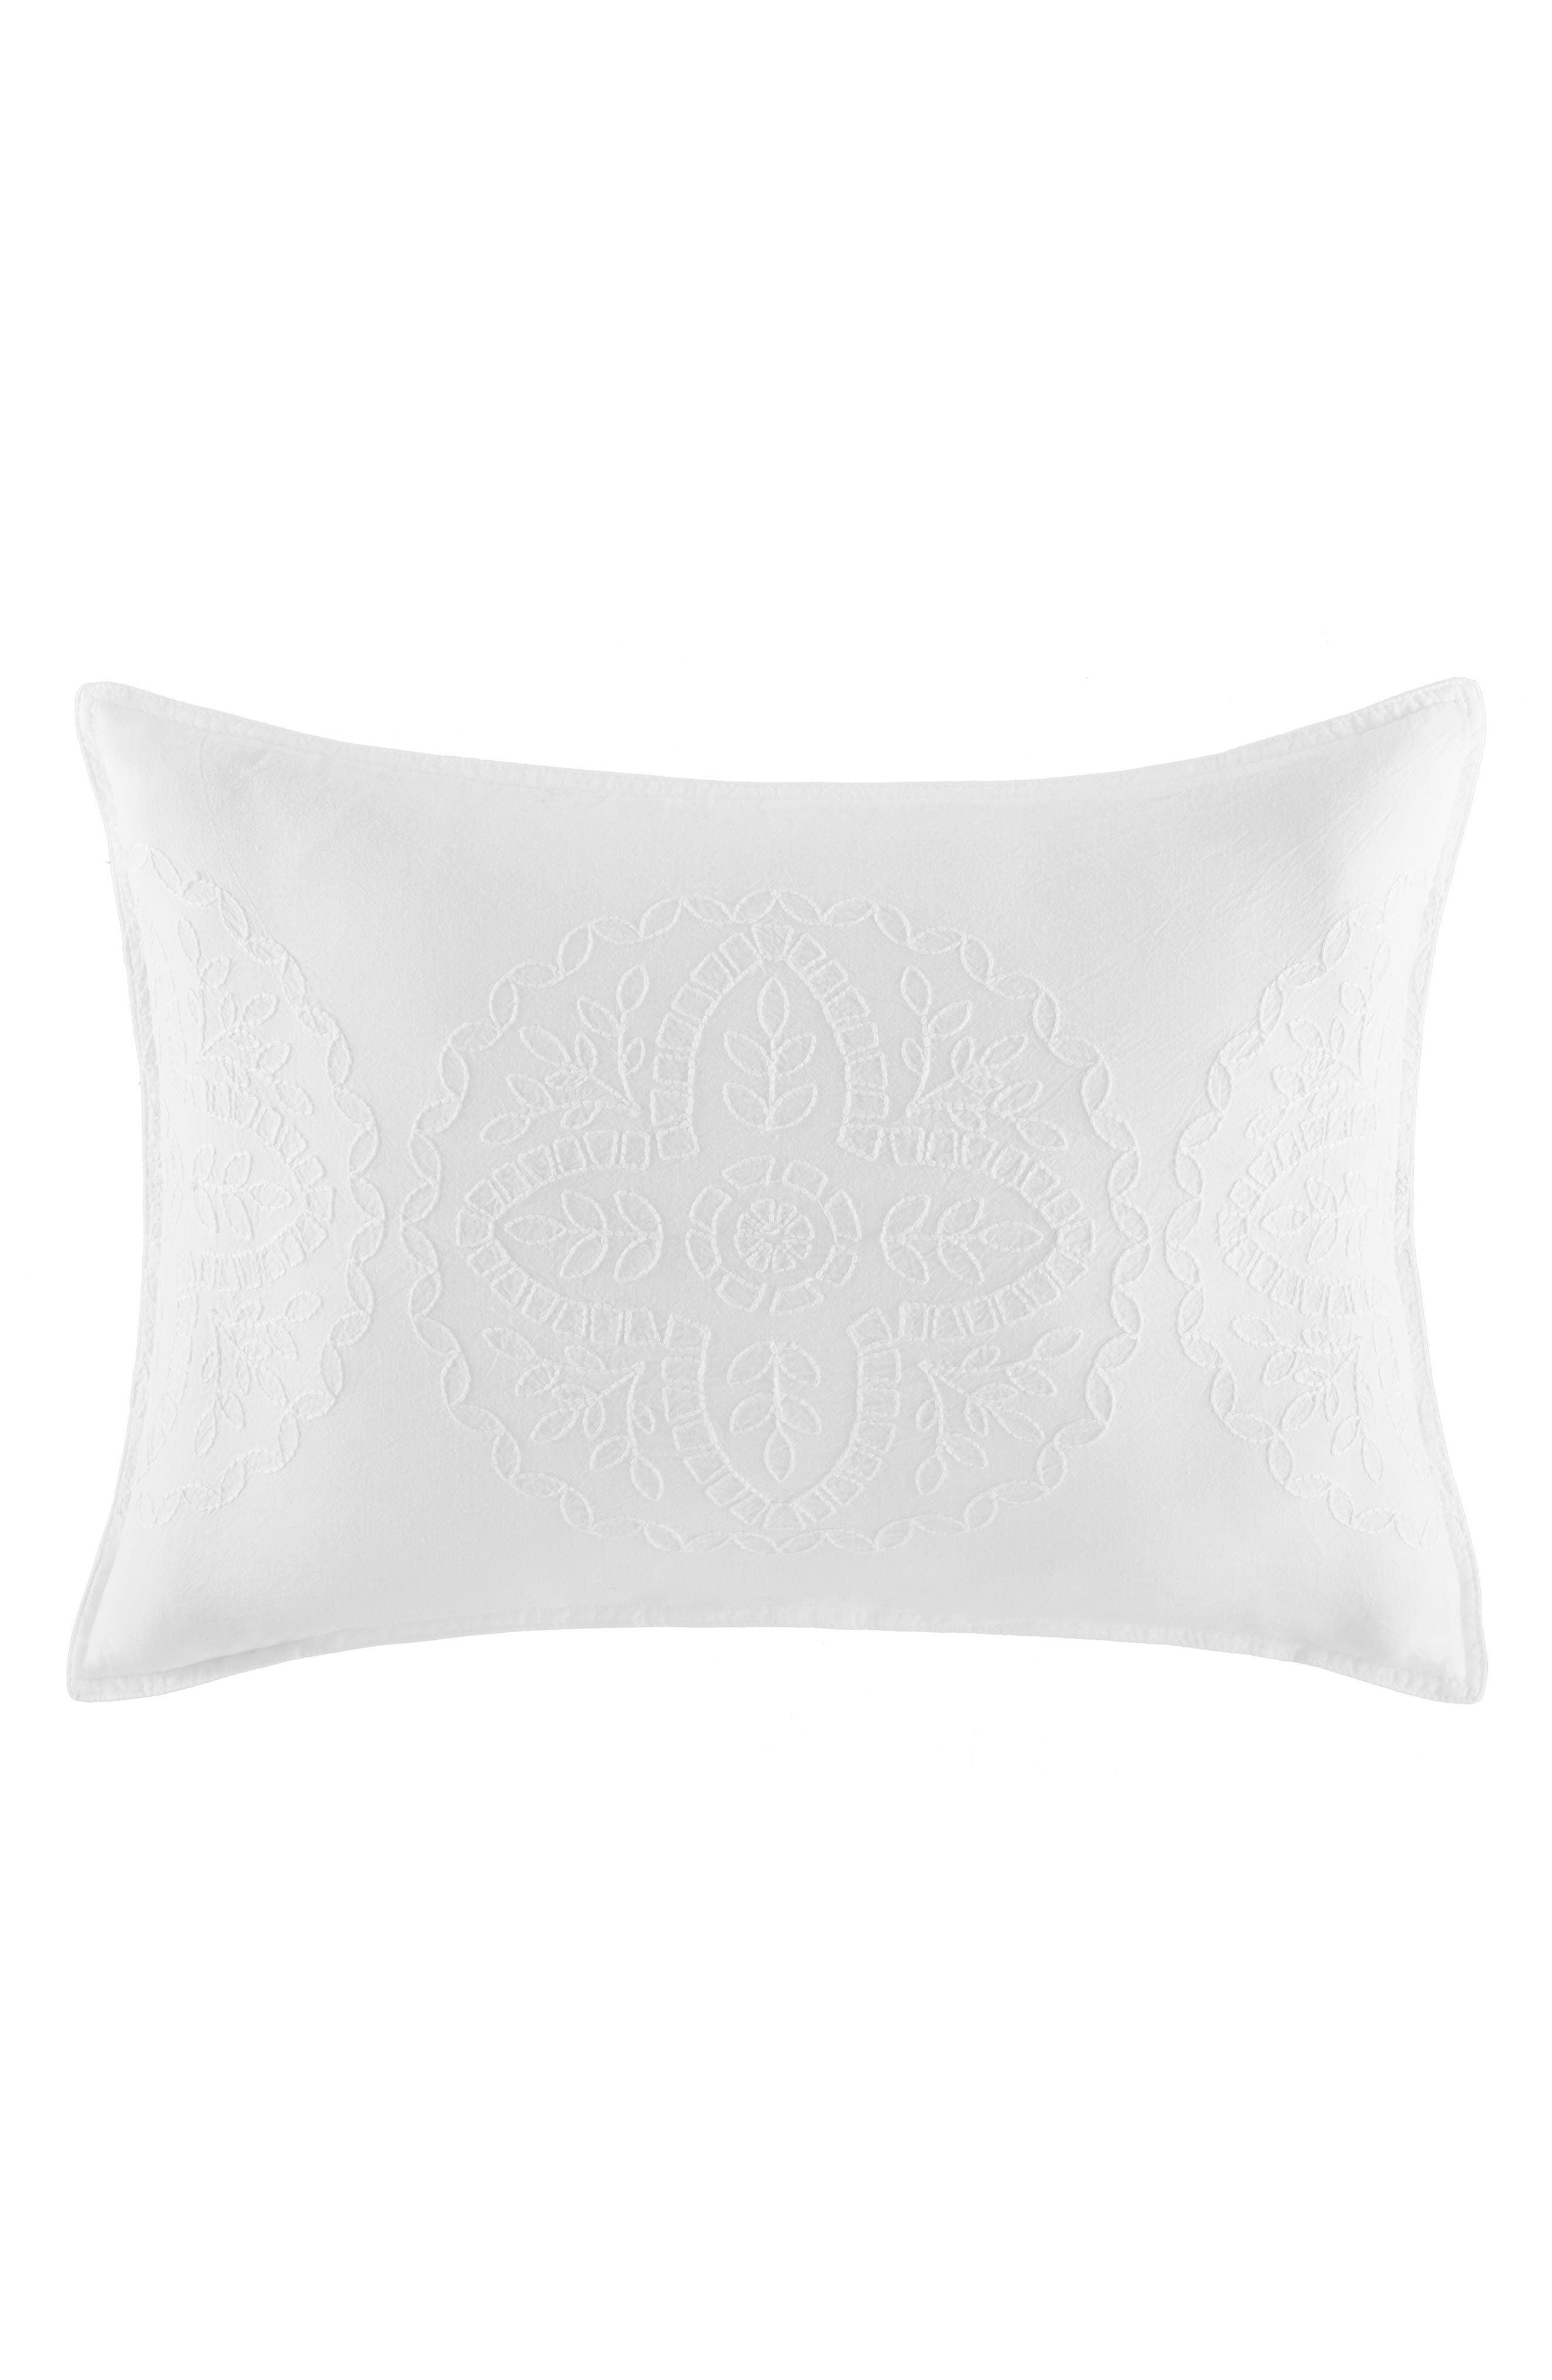 Alternate Image 1 Selected - Tommy Hilfiger Floral Medallion Accent Pillow